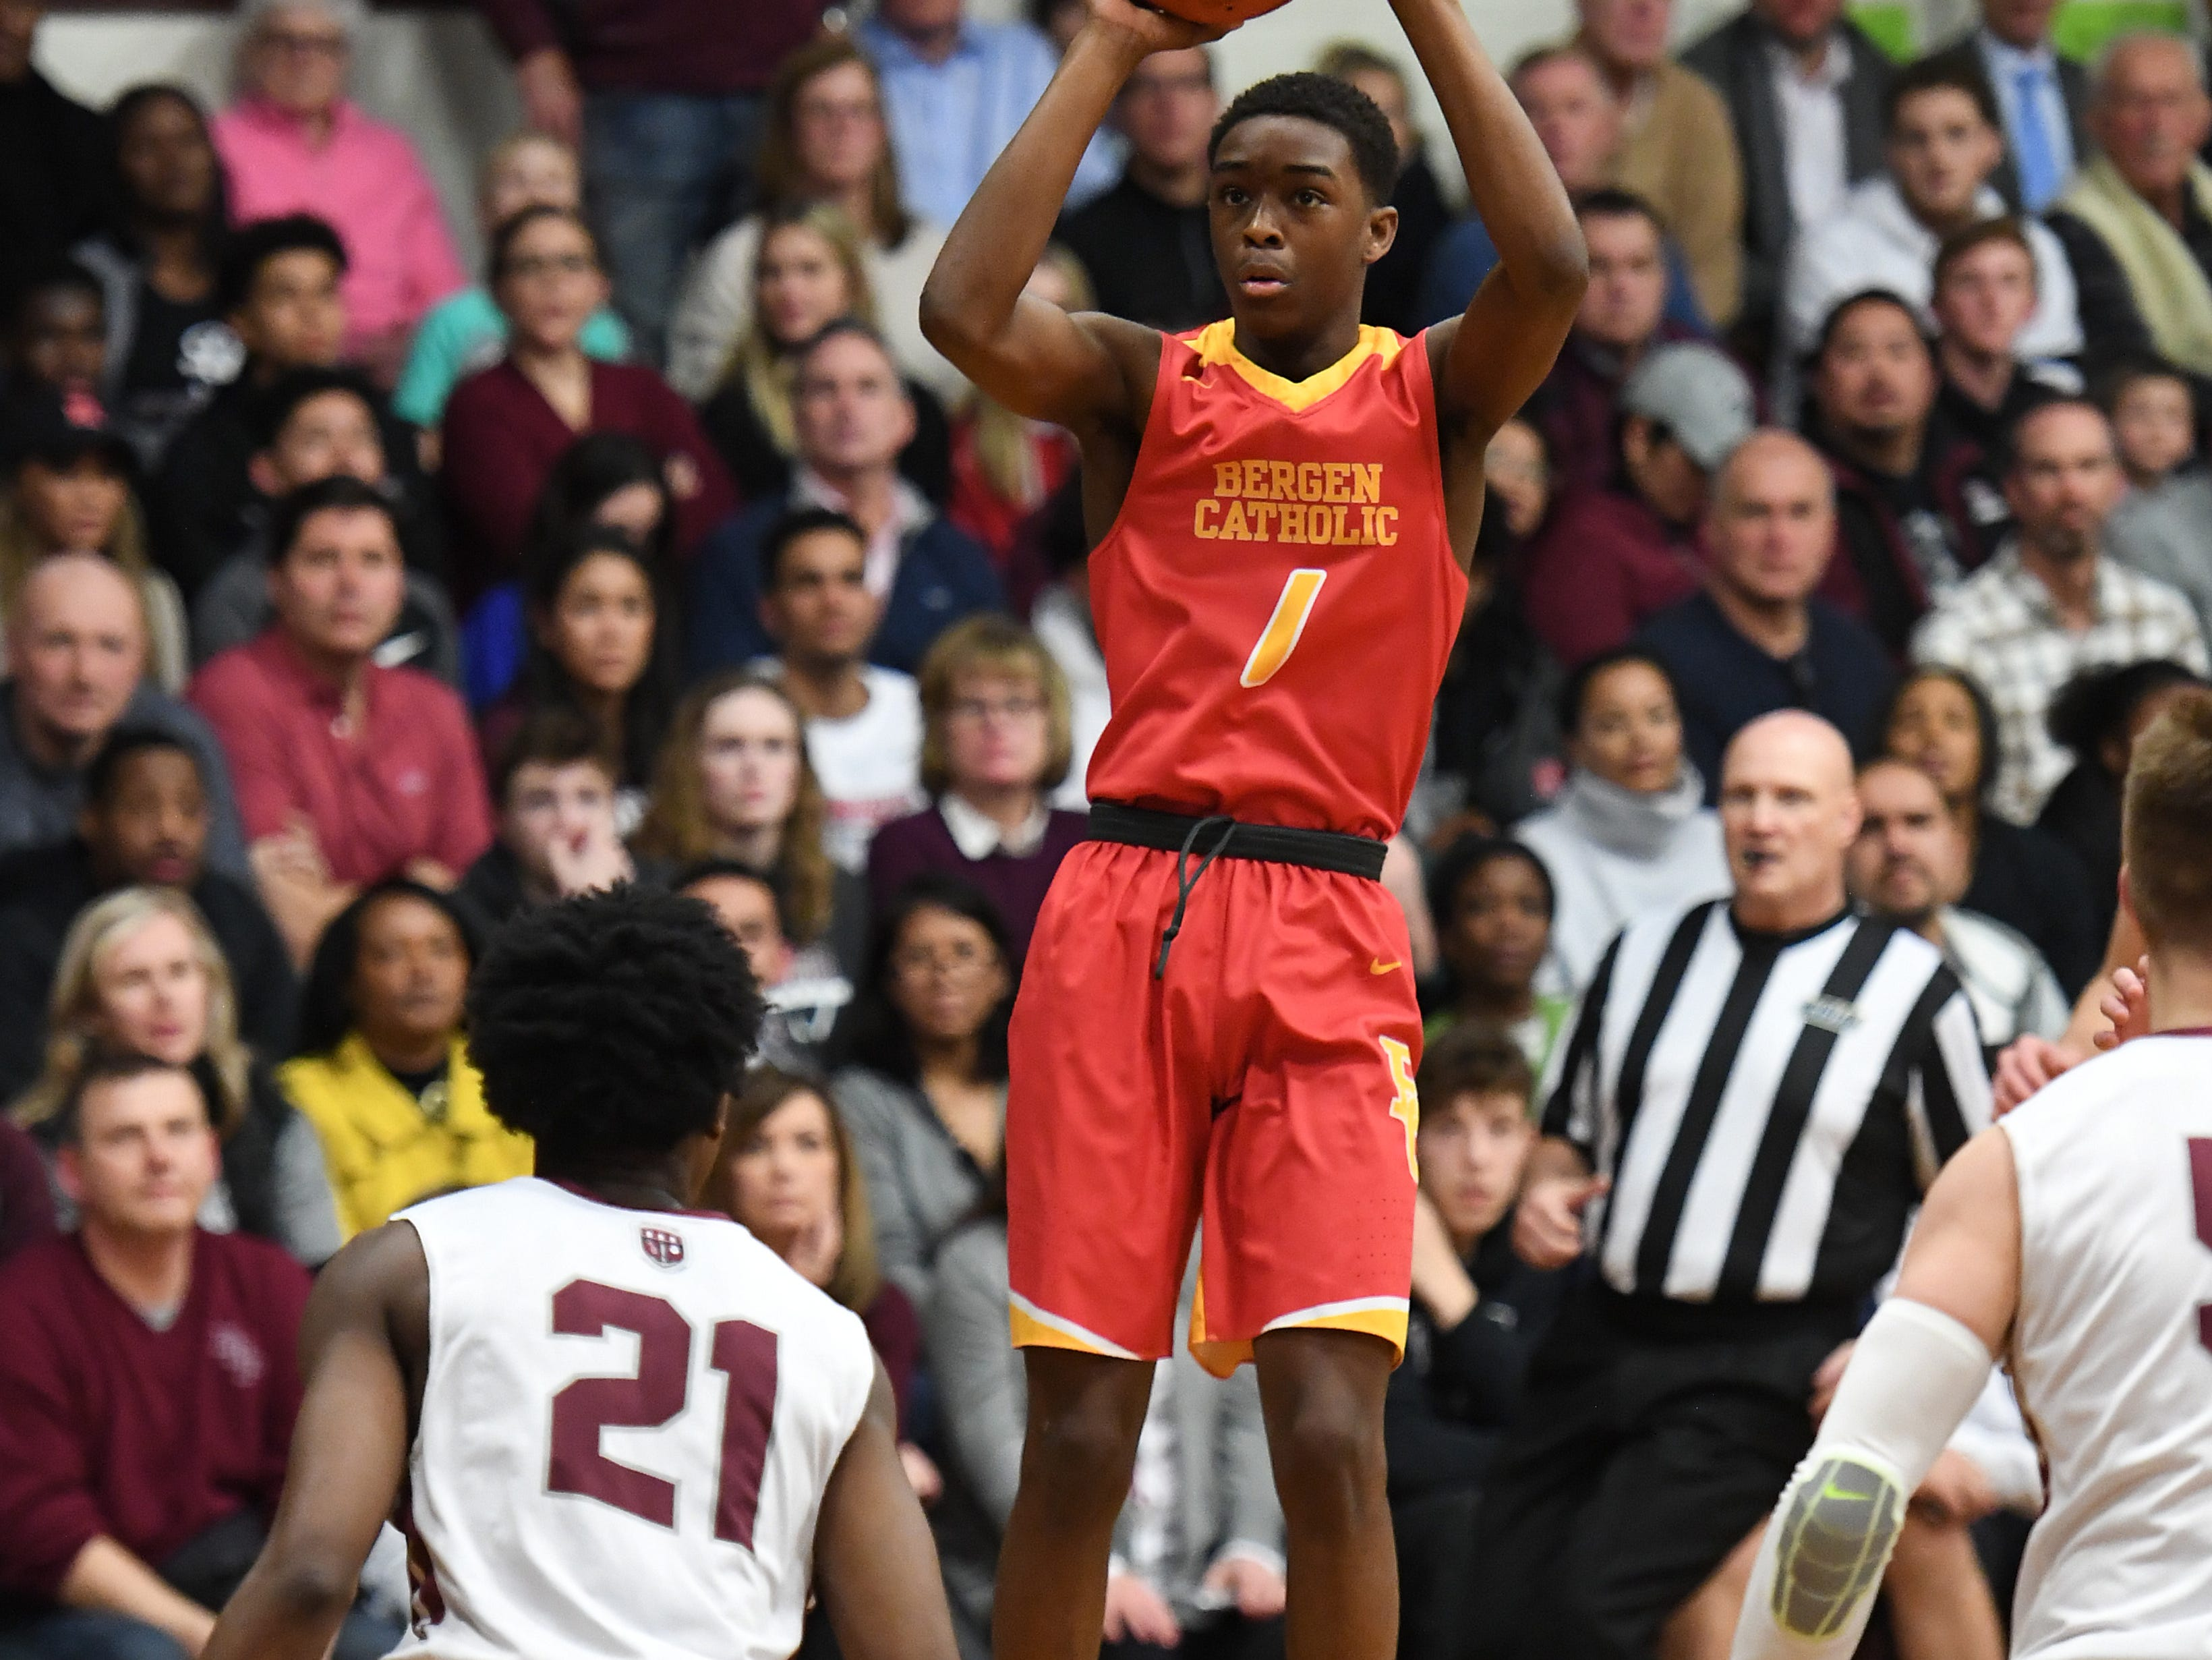 Bergen Catholic basketball at Don Bosco in Ramsey on Thursday, January 17, 2019. BC #1 Will Richardson takes a shot.